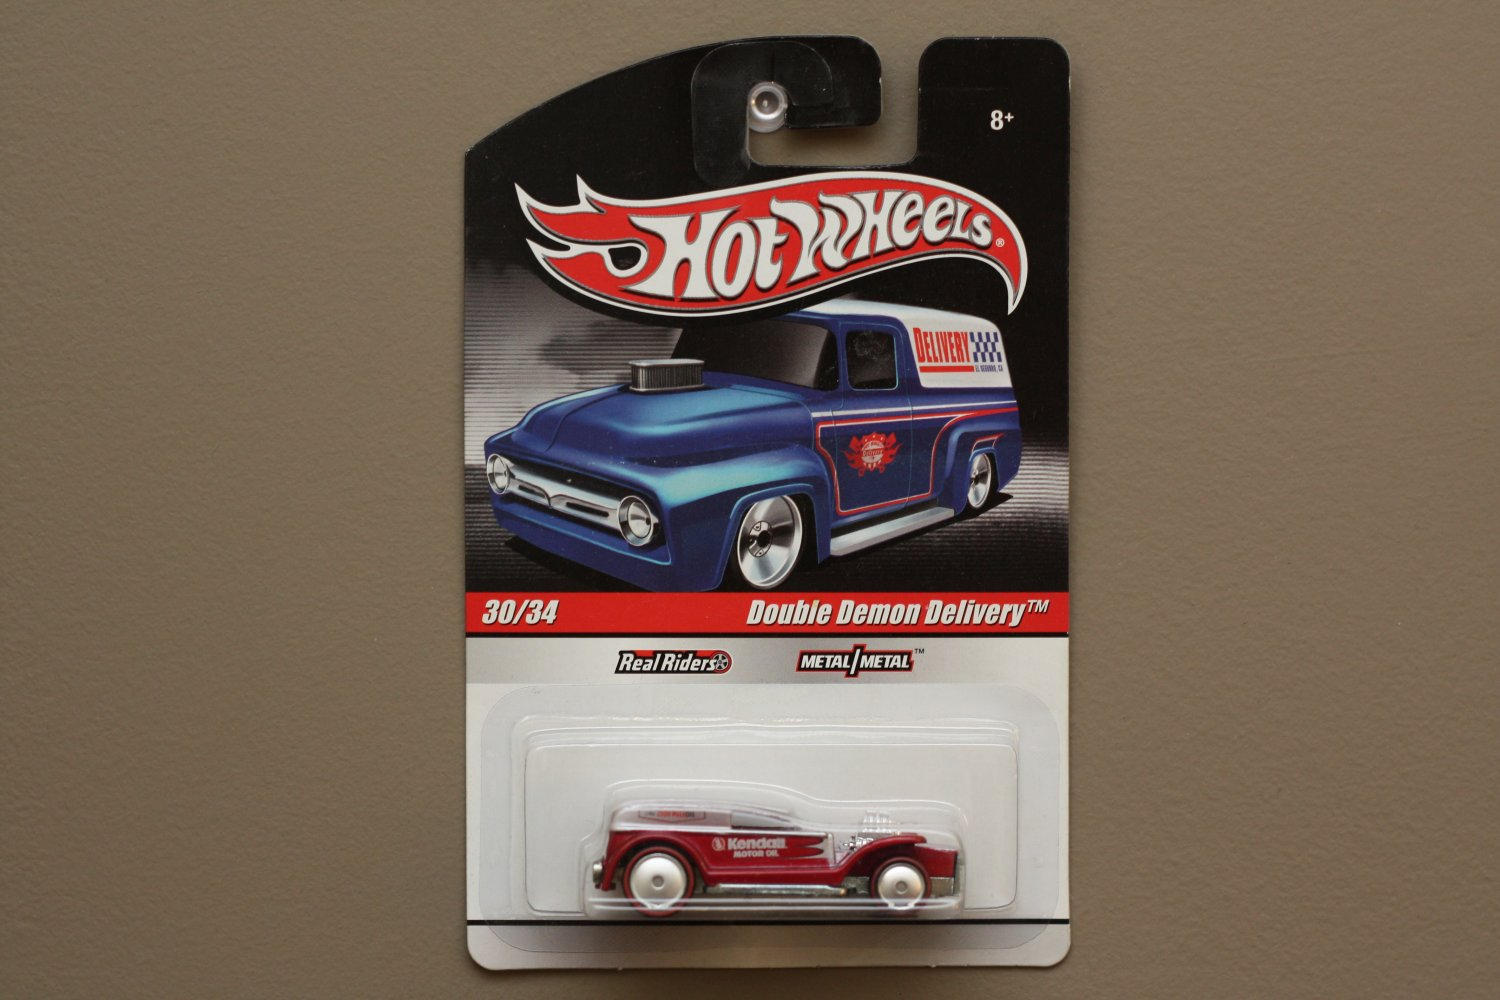 Hot Wheels 2010 Delivery Double Demon Delivery (silver/red)